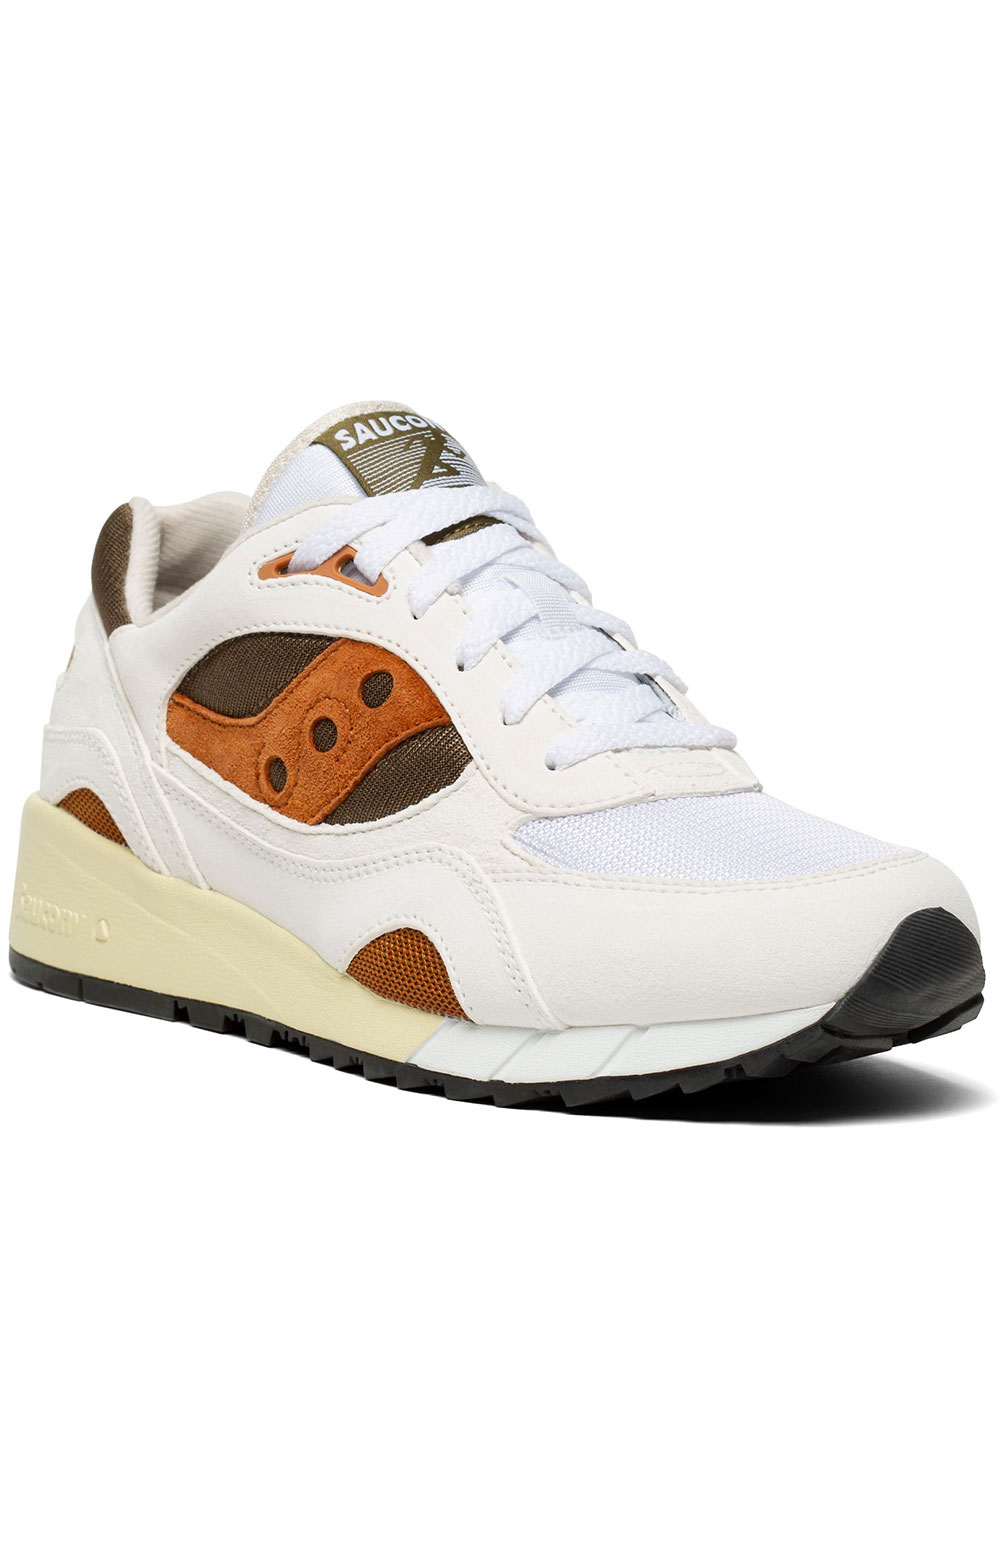 (S70441-14) Shadow 6000 Shoes - White/Rust 5